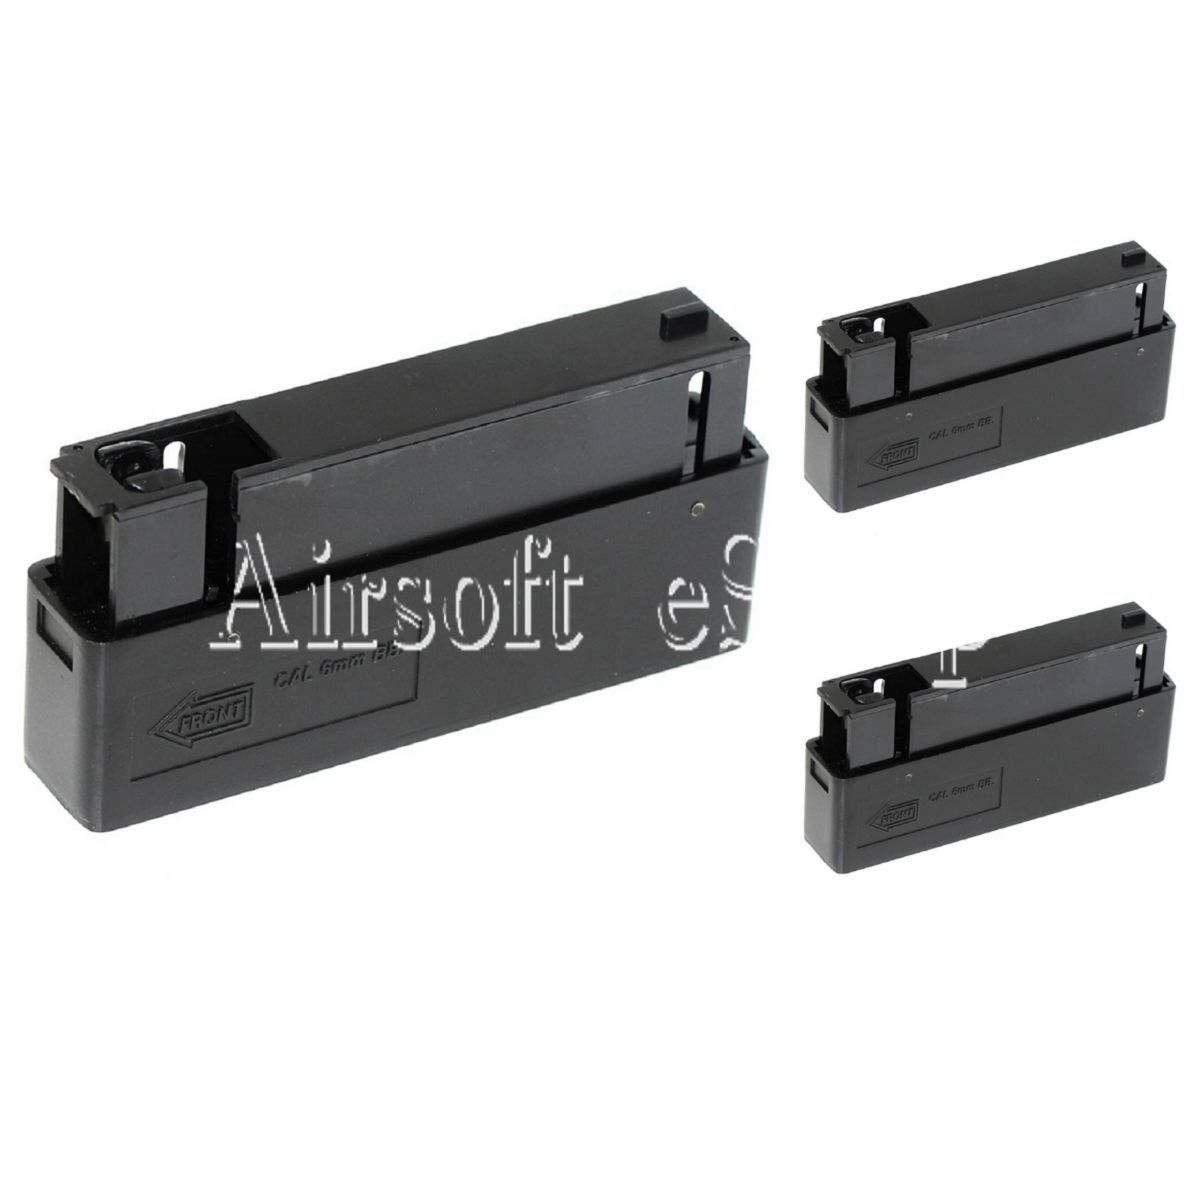 Airsoft 3pcs 25rd Mag Magazine For MB01 MB04 MB05 L96 Bolt Action Sniper Rifle